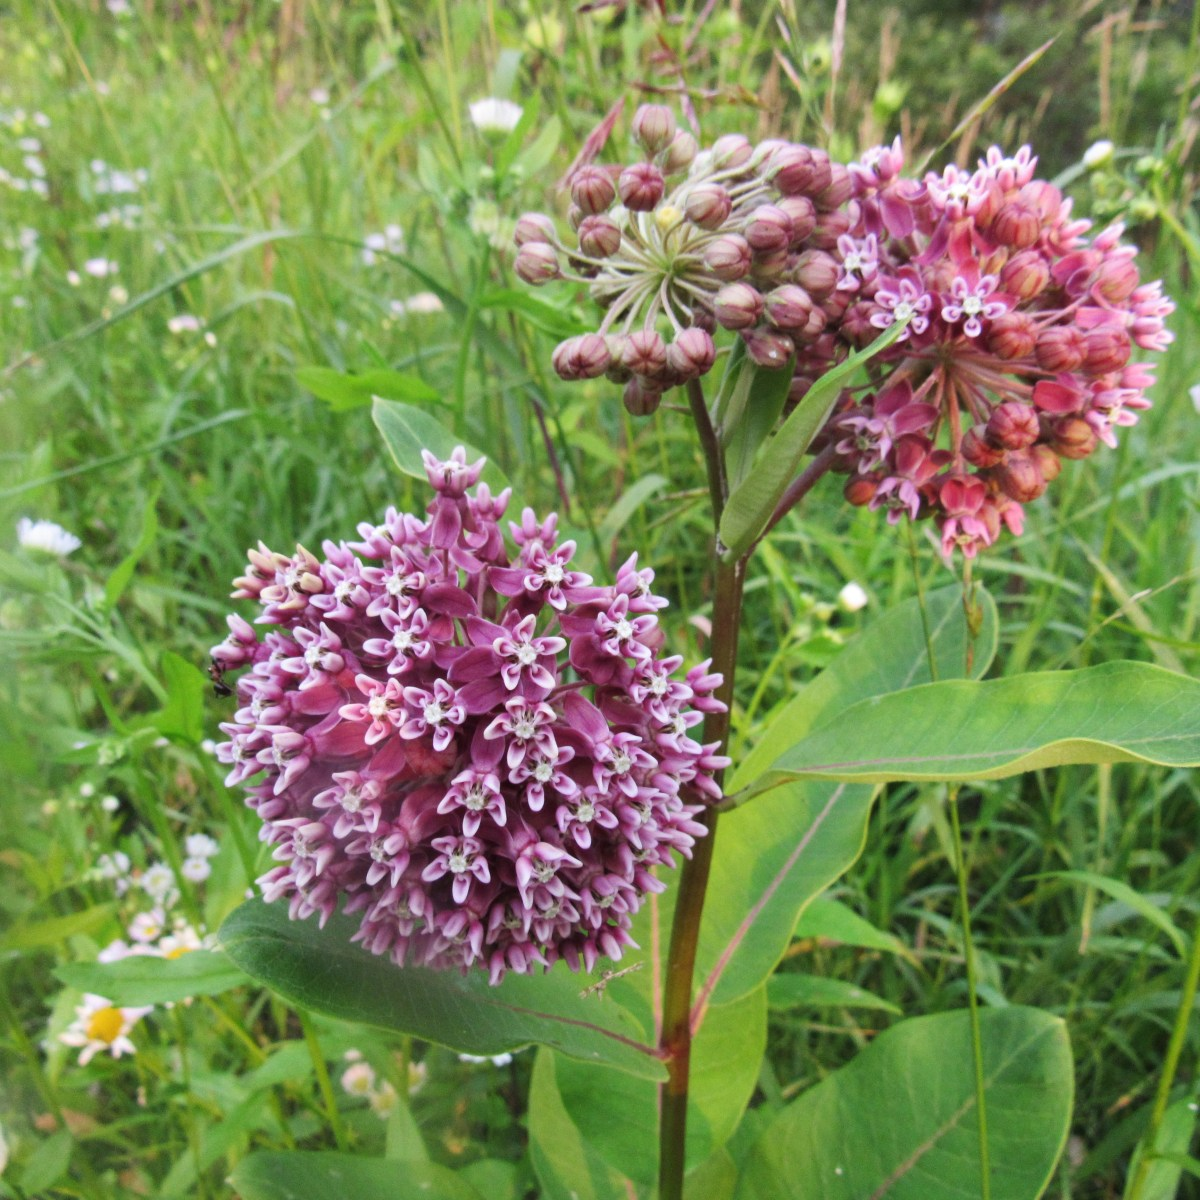 Common milkweed with pink blossoms in a meadow